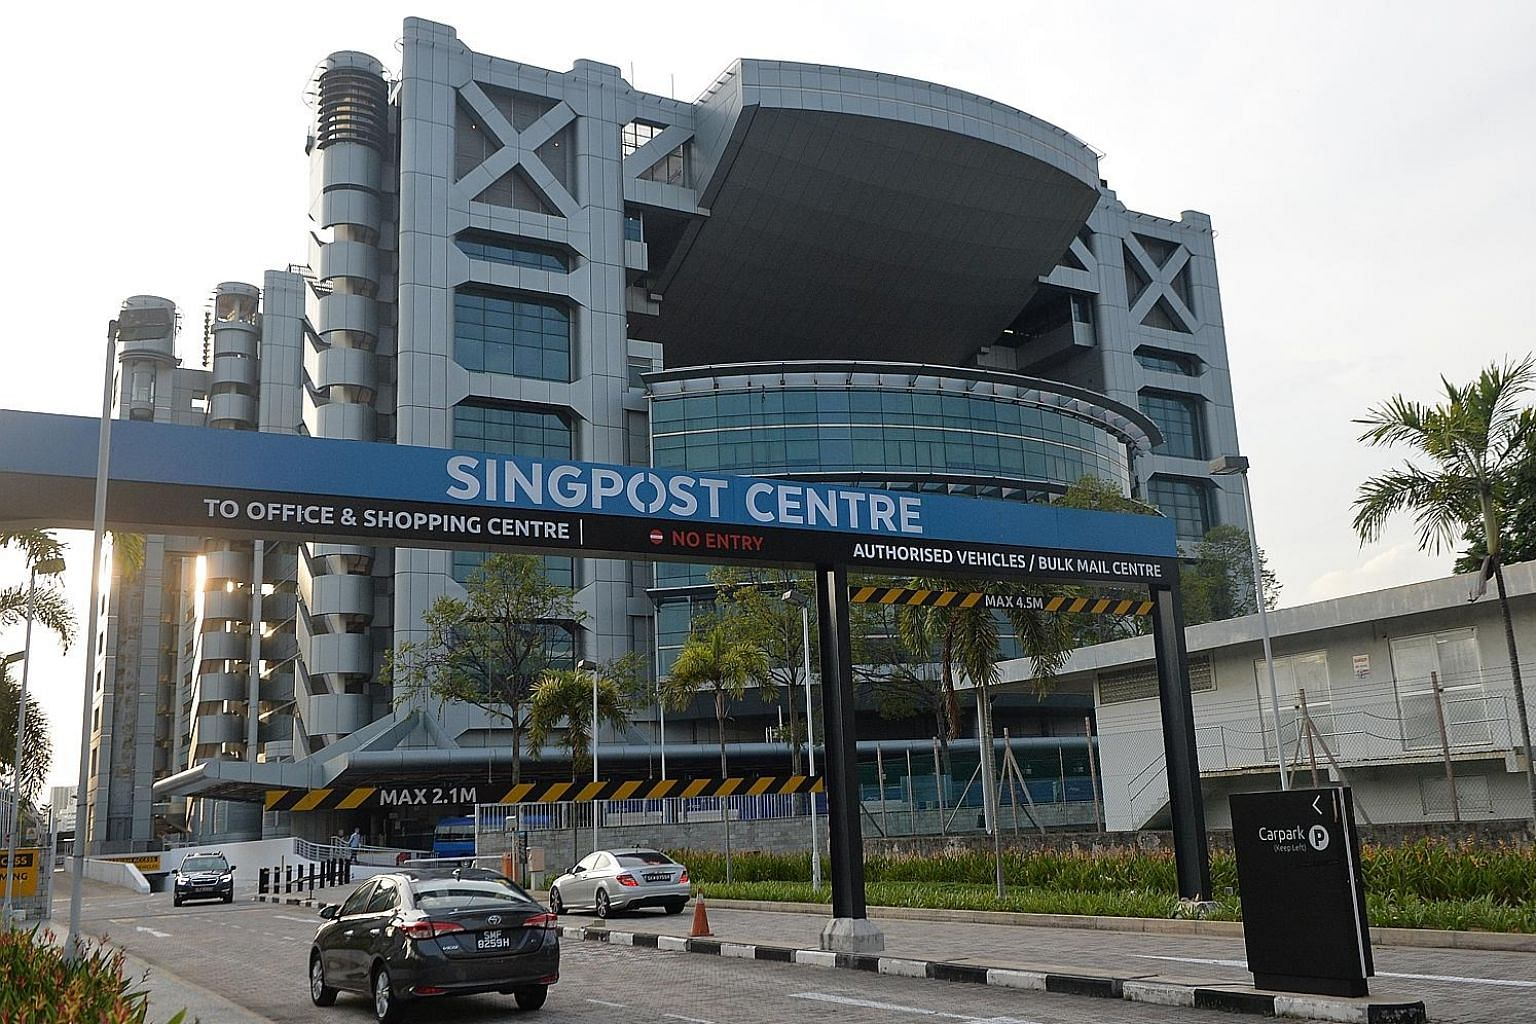 SingPost Centre in Paya Lebar. SingPost bought majority stakes in TradeGlobal and Jagged Peak in 2015 but the foray into the North American e-commerce market did not pan out.